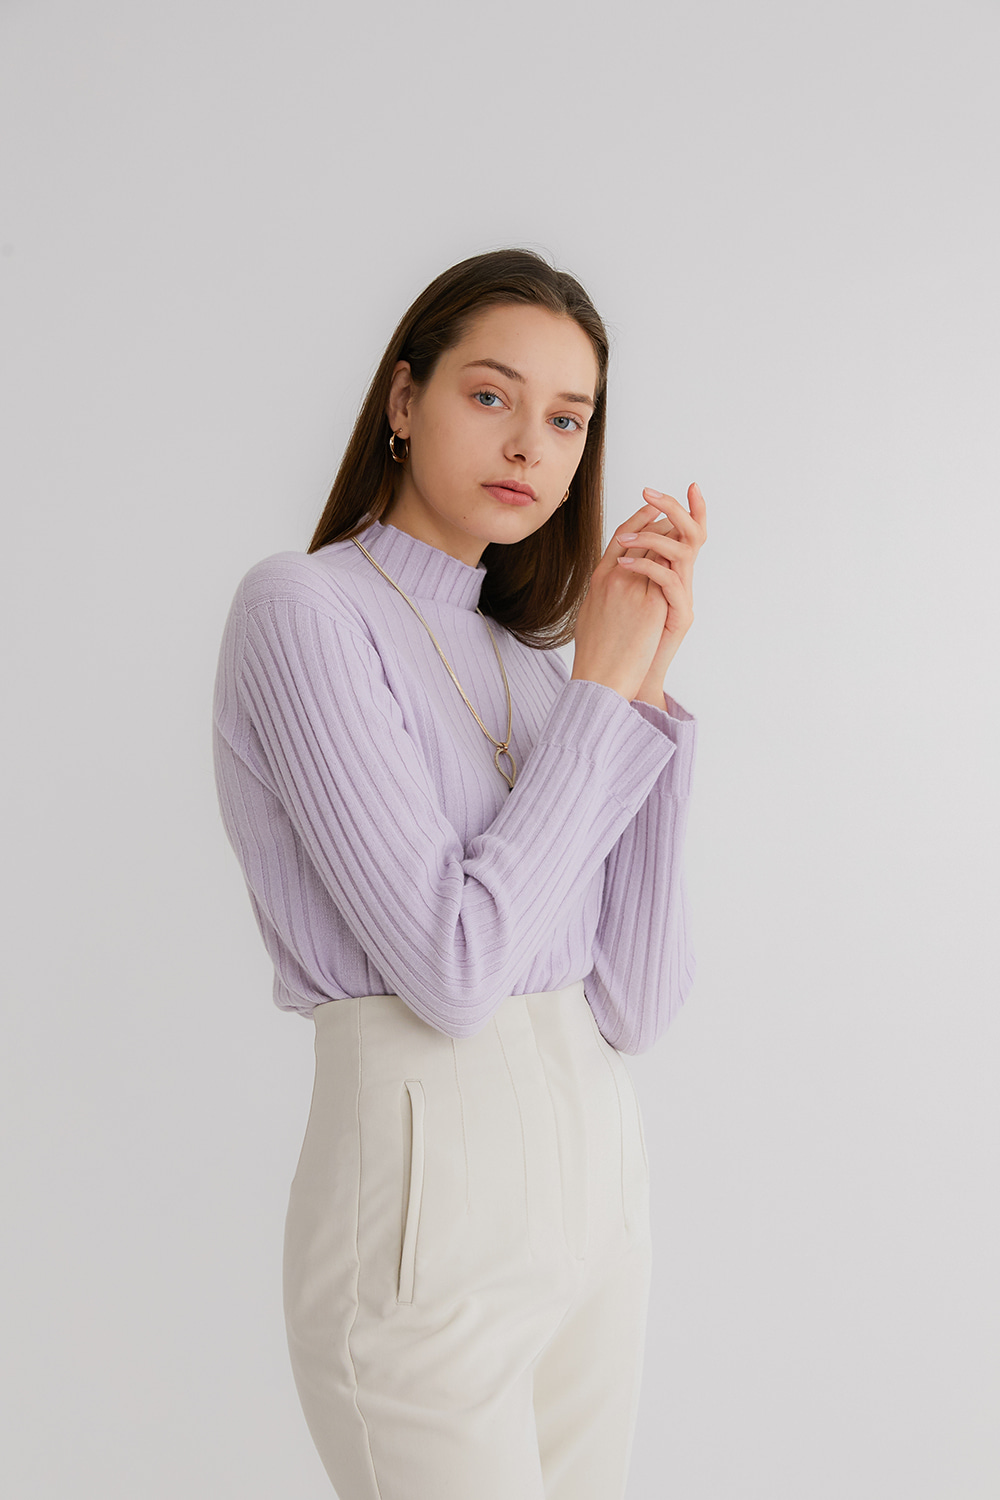 프리미엄 캐시미어 100 골지 스웨터 [Pure cashmere100 ribbed soft-touch sweater by whole-garment knitting - Lavender]